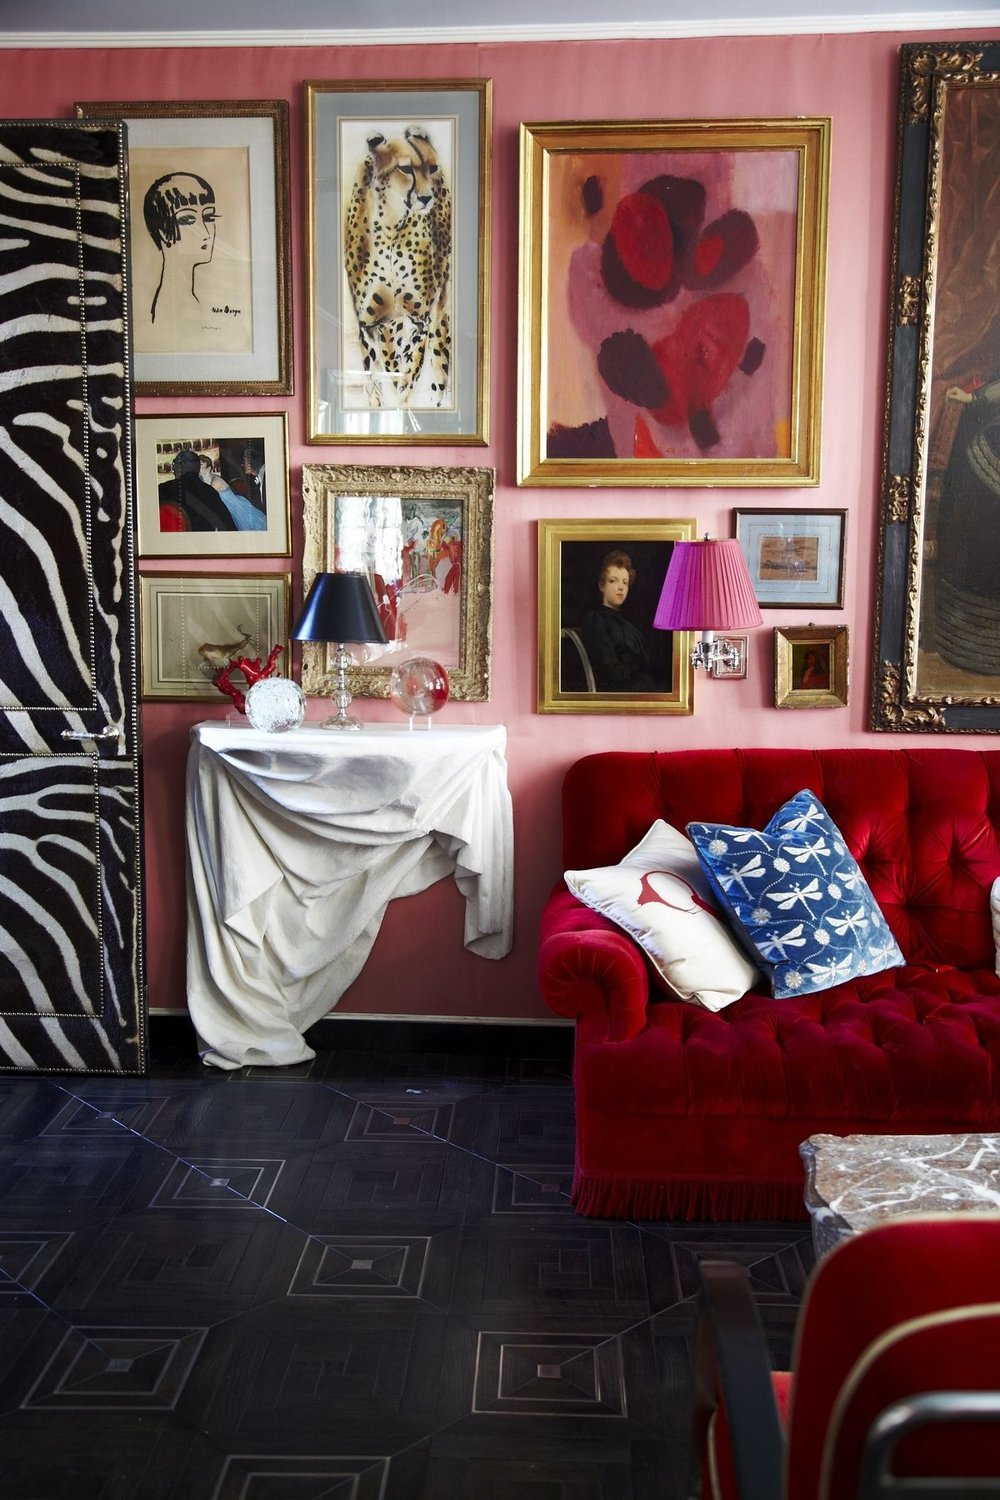 Miles Redd, Photo by Paul Costello, Architectural Digest